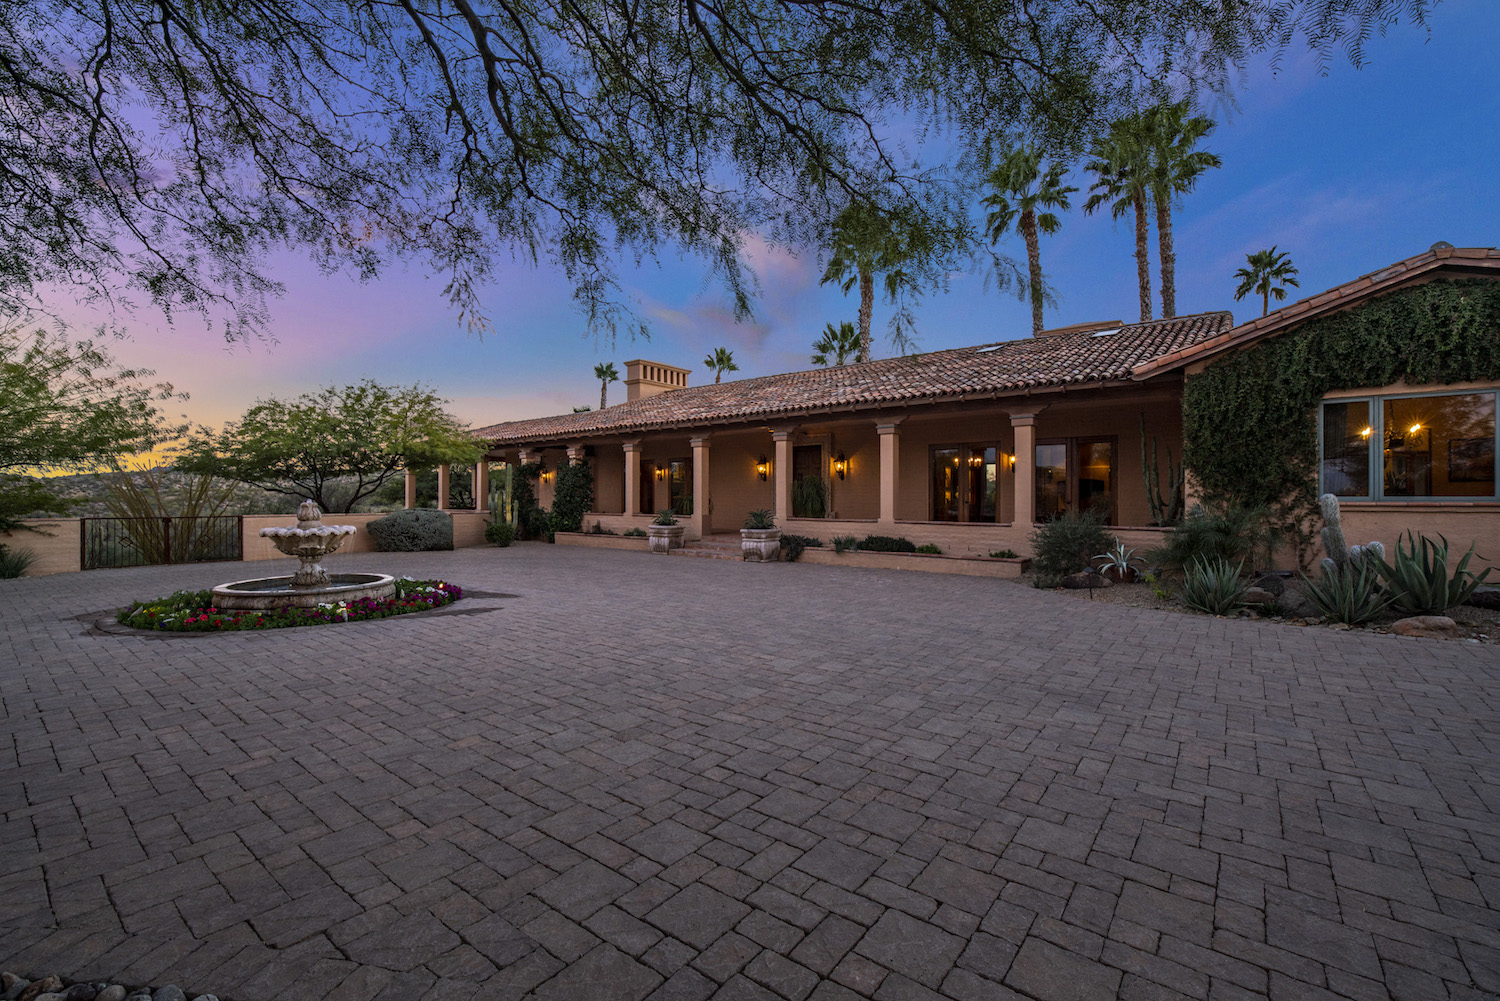 Home for sale Wickenburg AZ golf